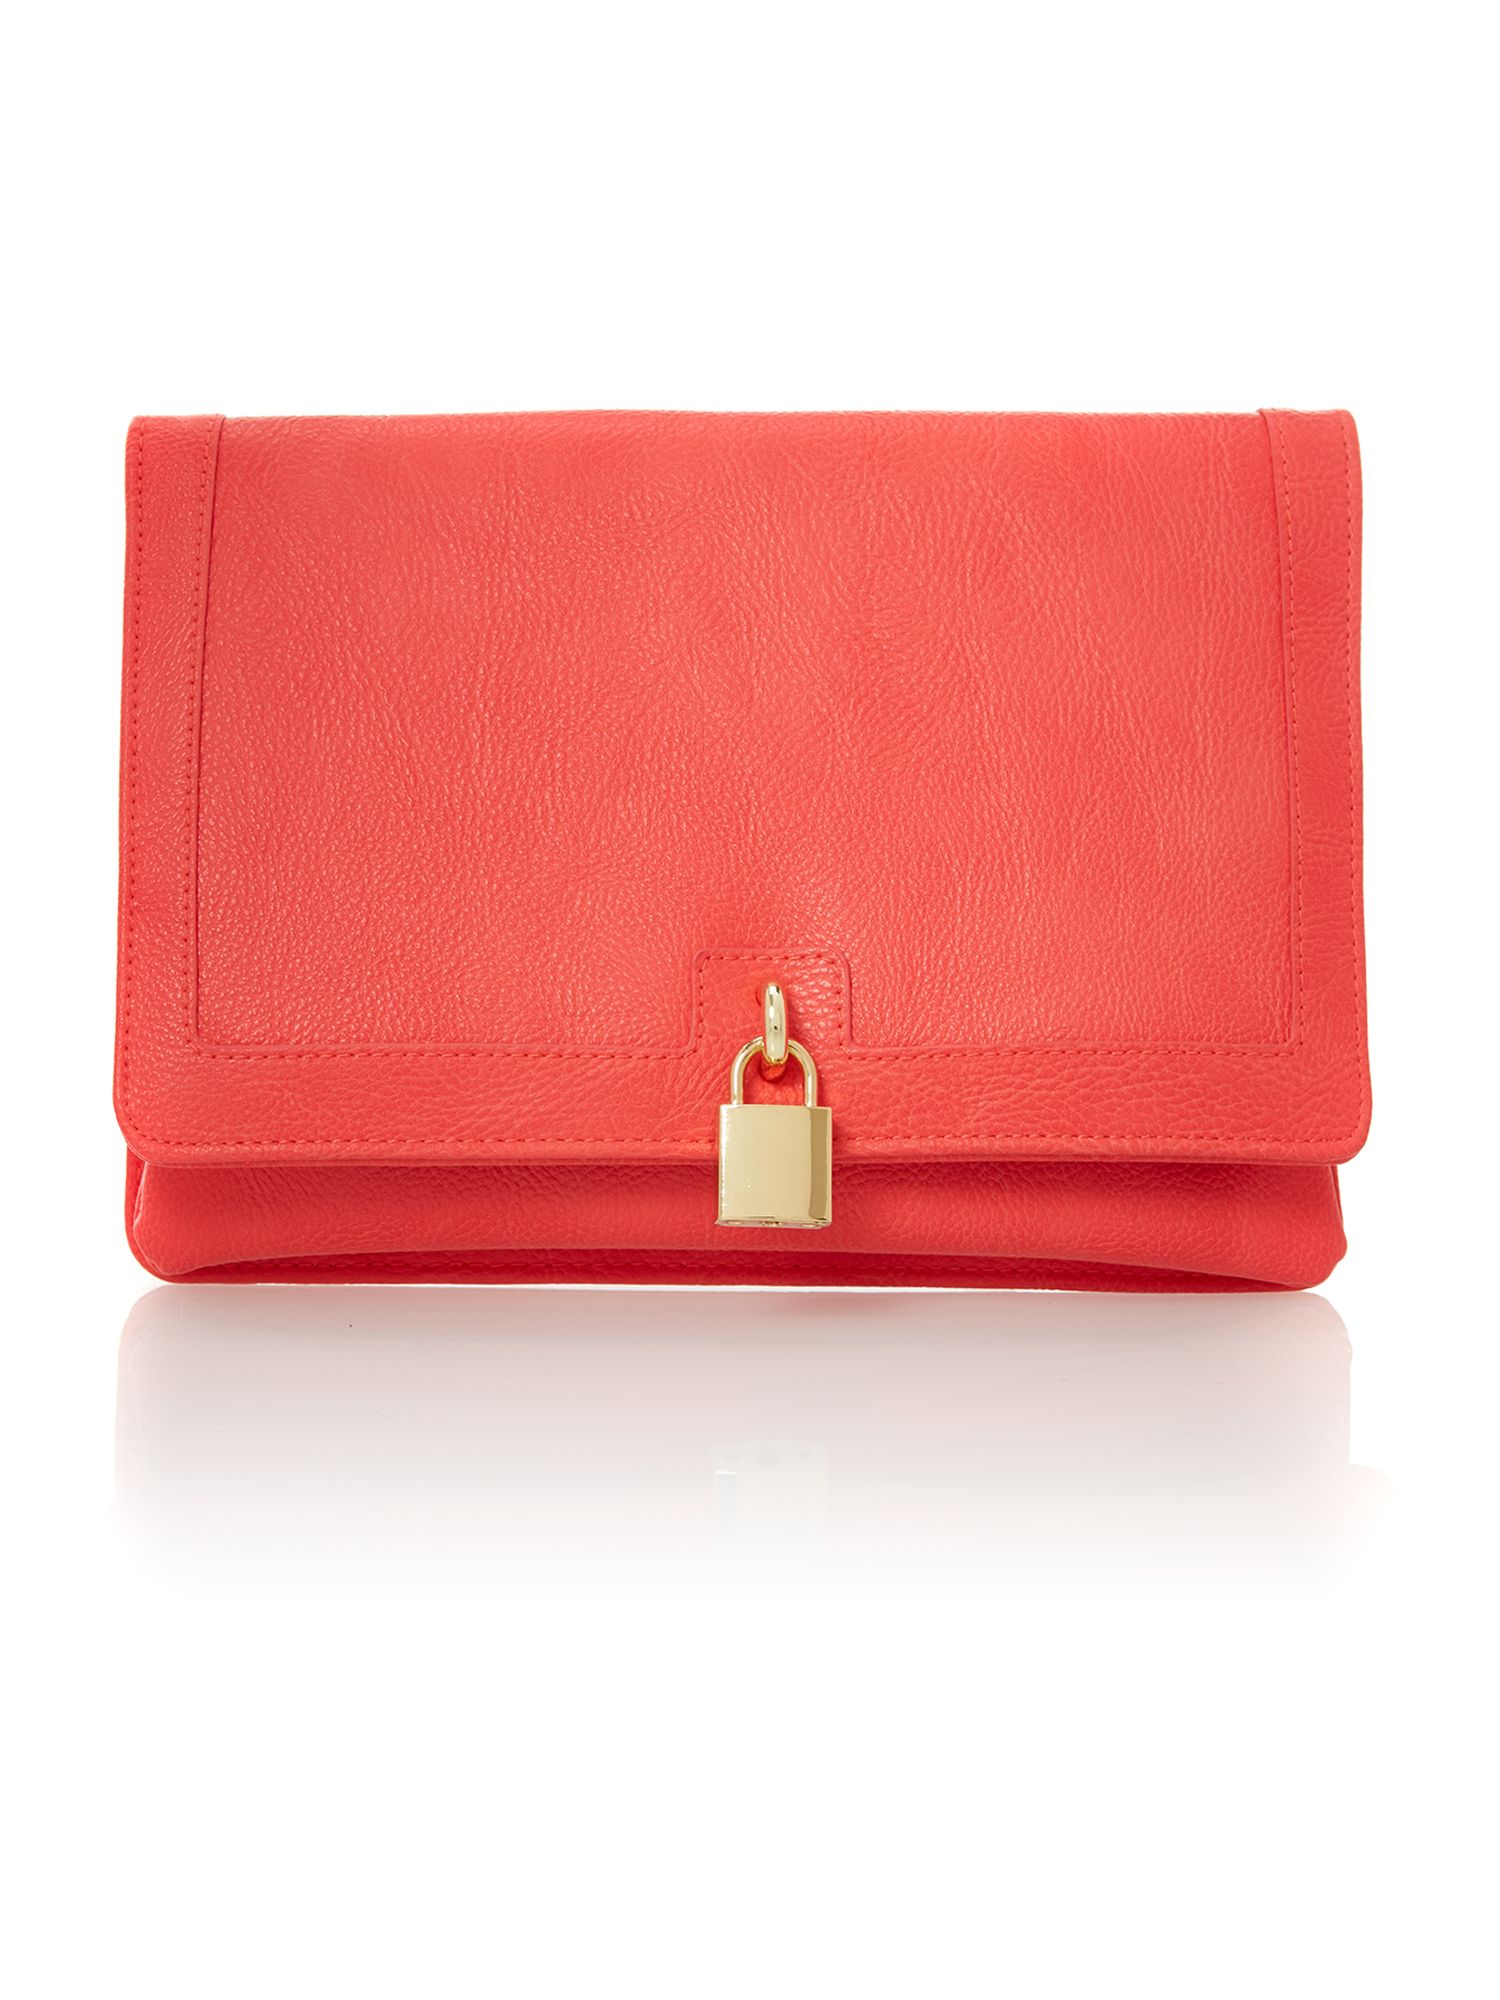 Antonia clutch handbag